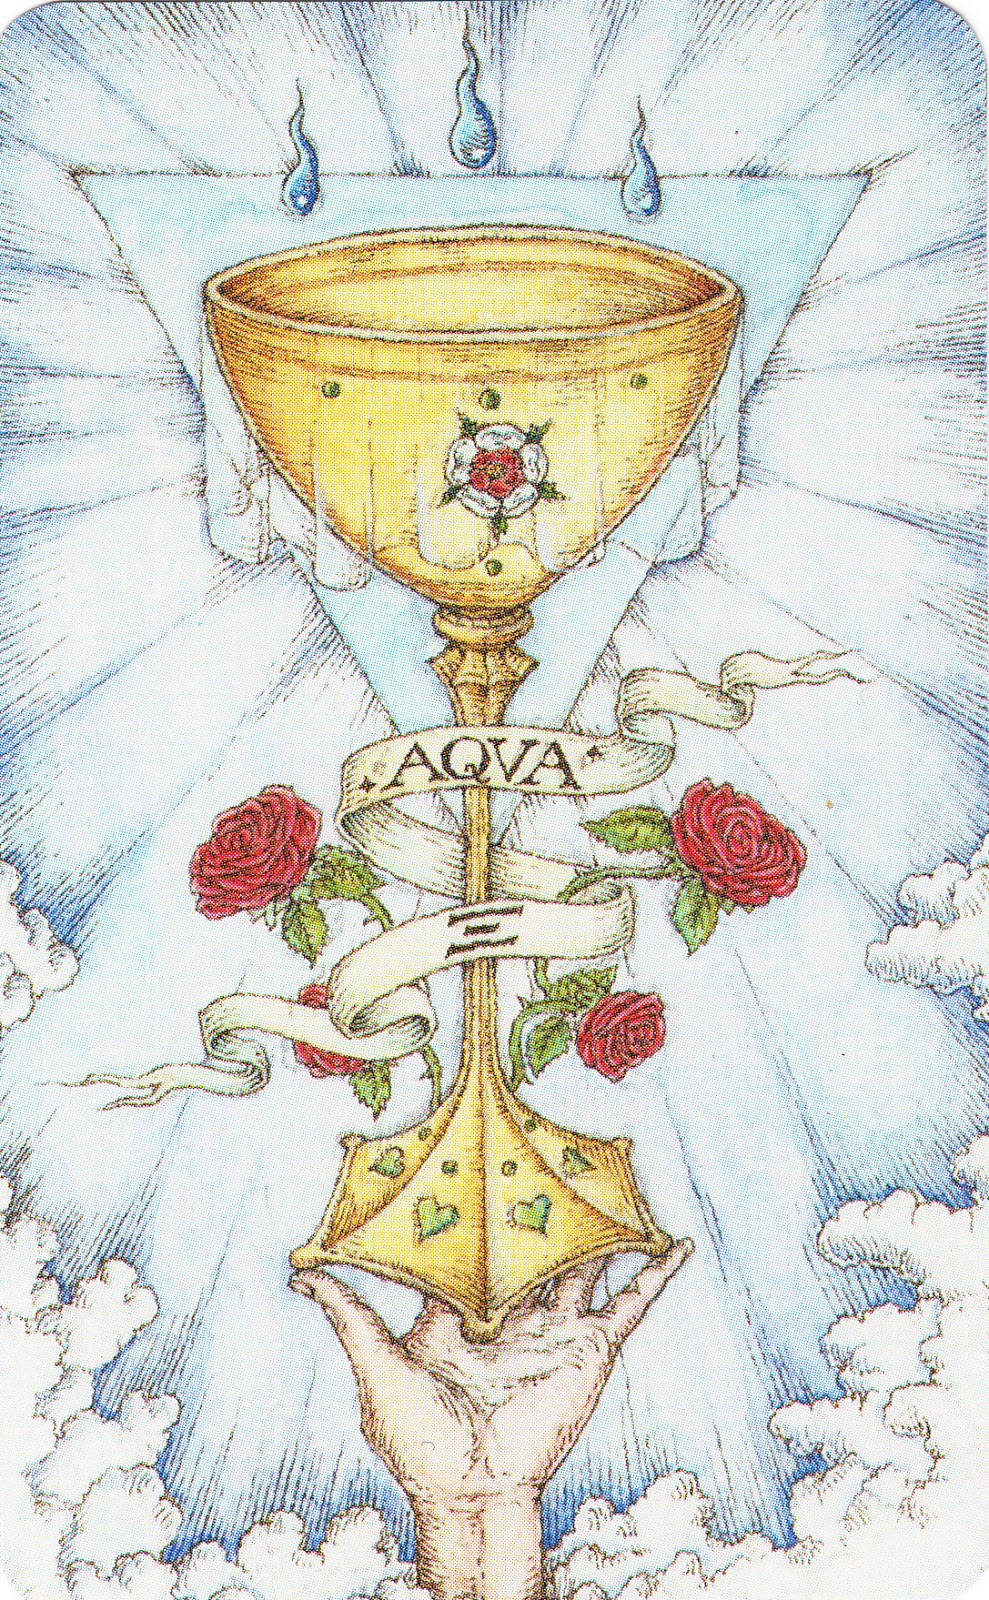 8 of cups and ace wands relationship